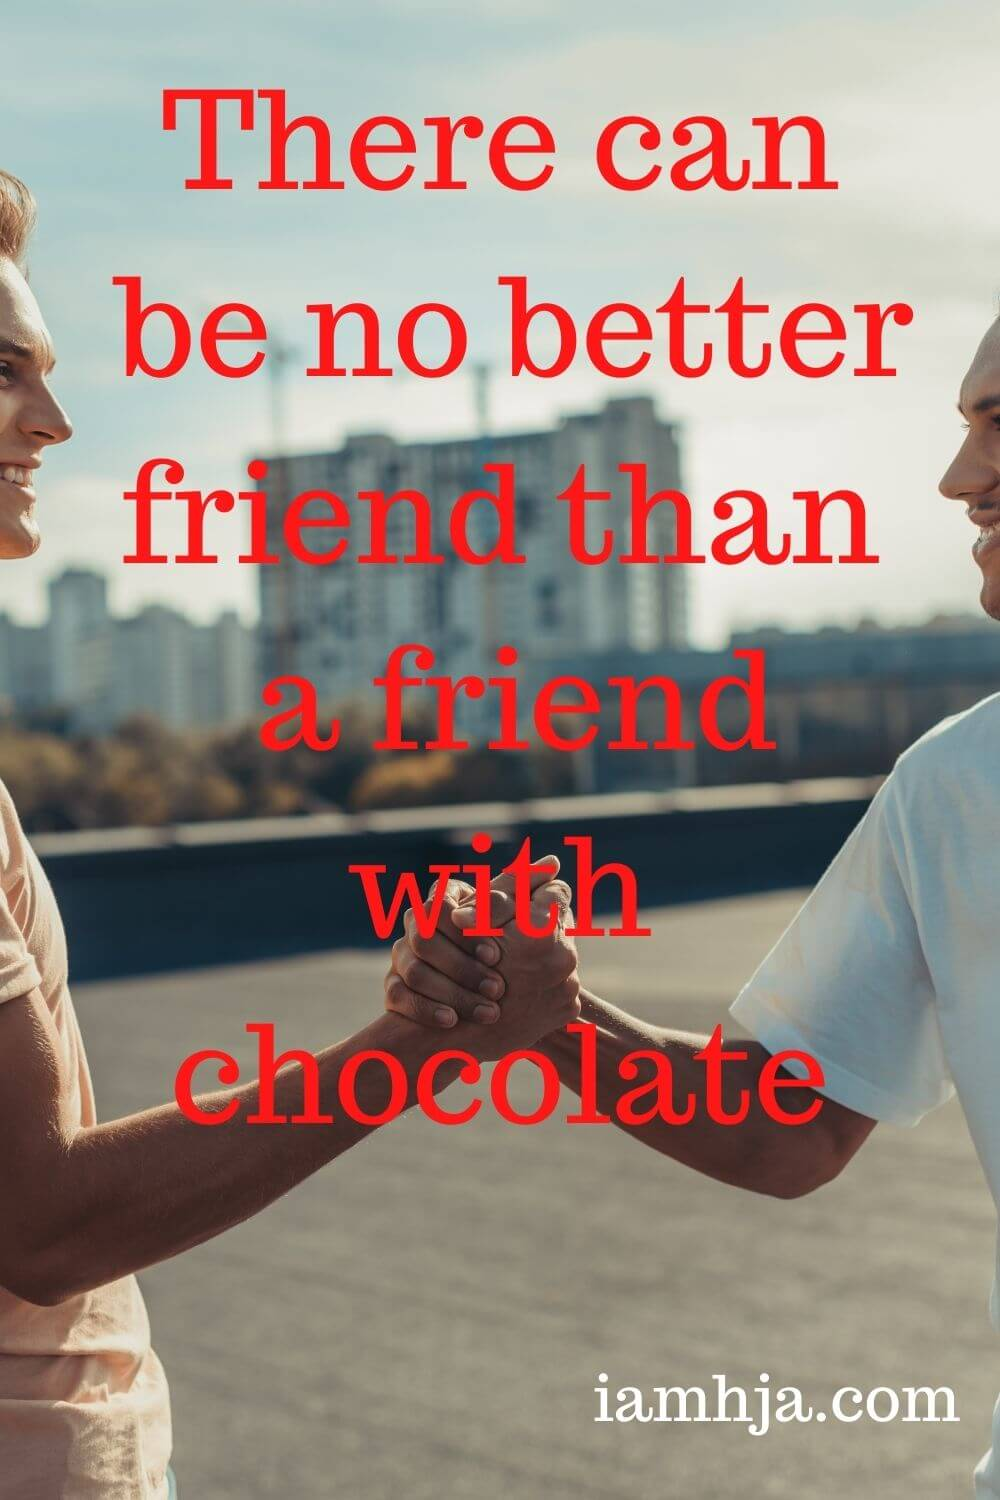 There can be no better friend than a friend with chocolate